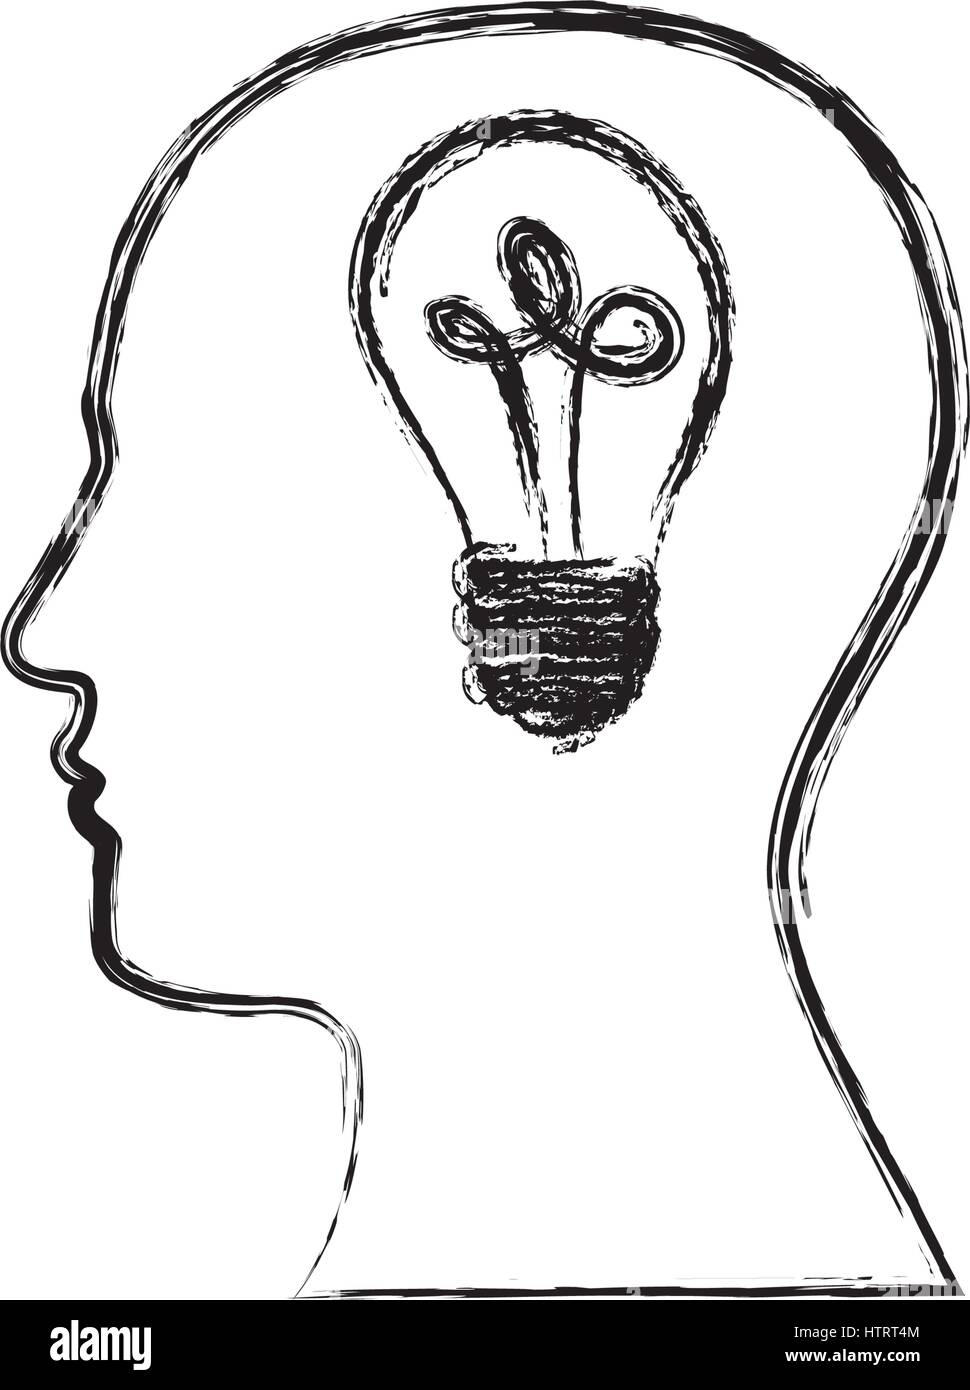 monochrome sketch of silhouette human face with light bulb in mind - Stock Image